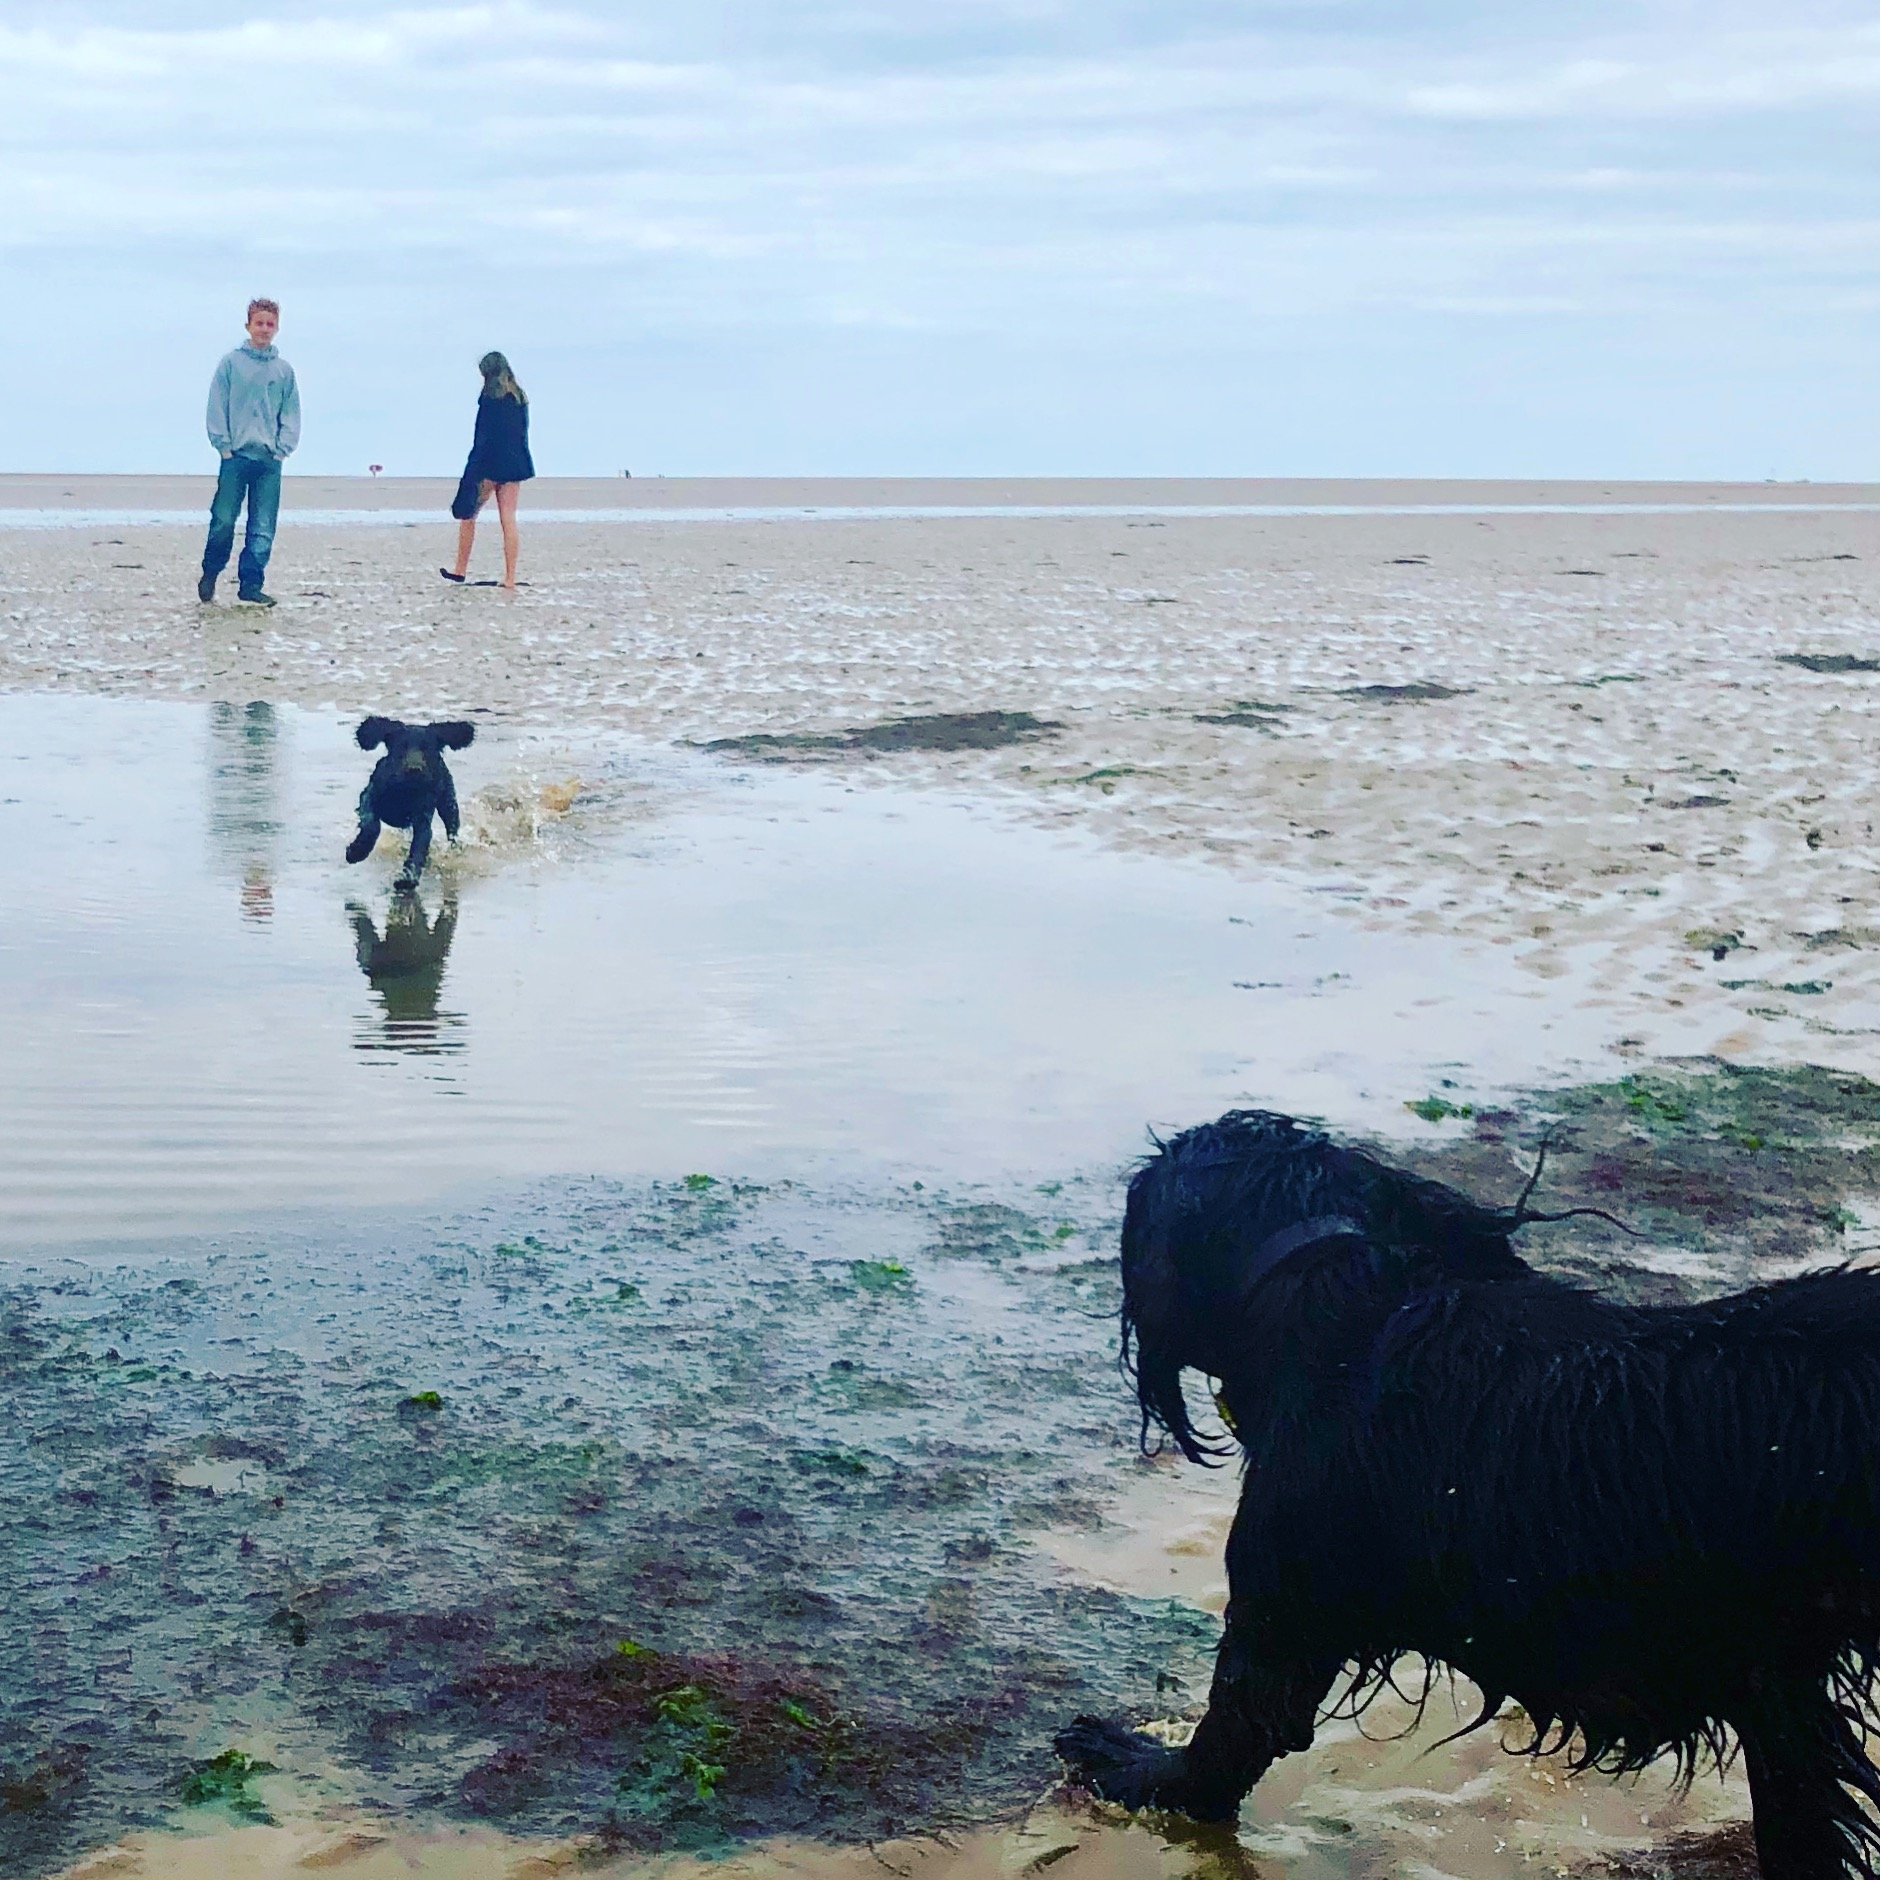 Twiggy's first trip to Brancaster beach